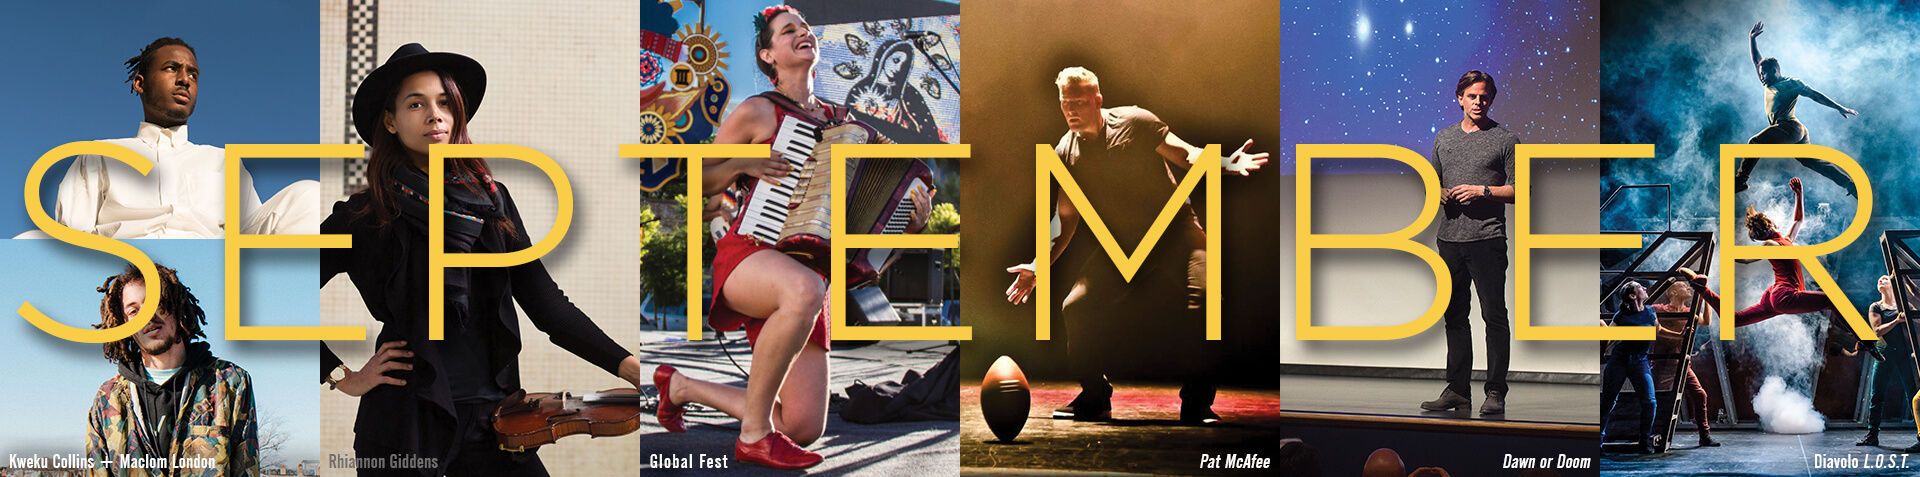 September from Purdue Convocations: Kweku Collins & Malcolm London, Rhiannon Giddens, Global Fest, Pat McAfee, Dawn or Doom, Diavolo L.O.S.T.